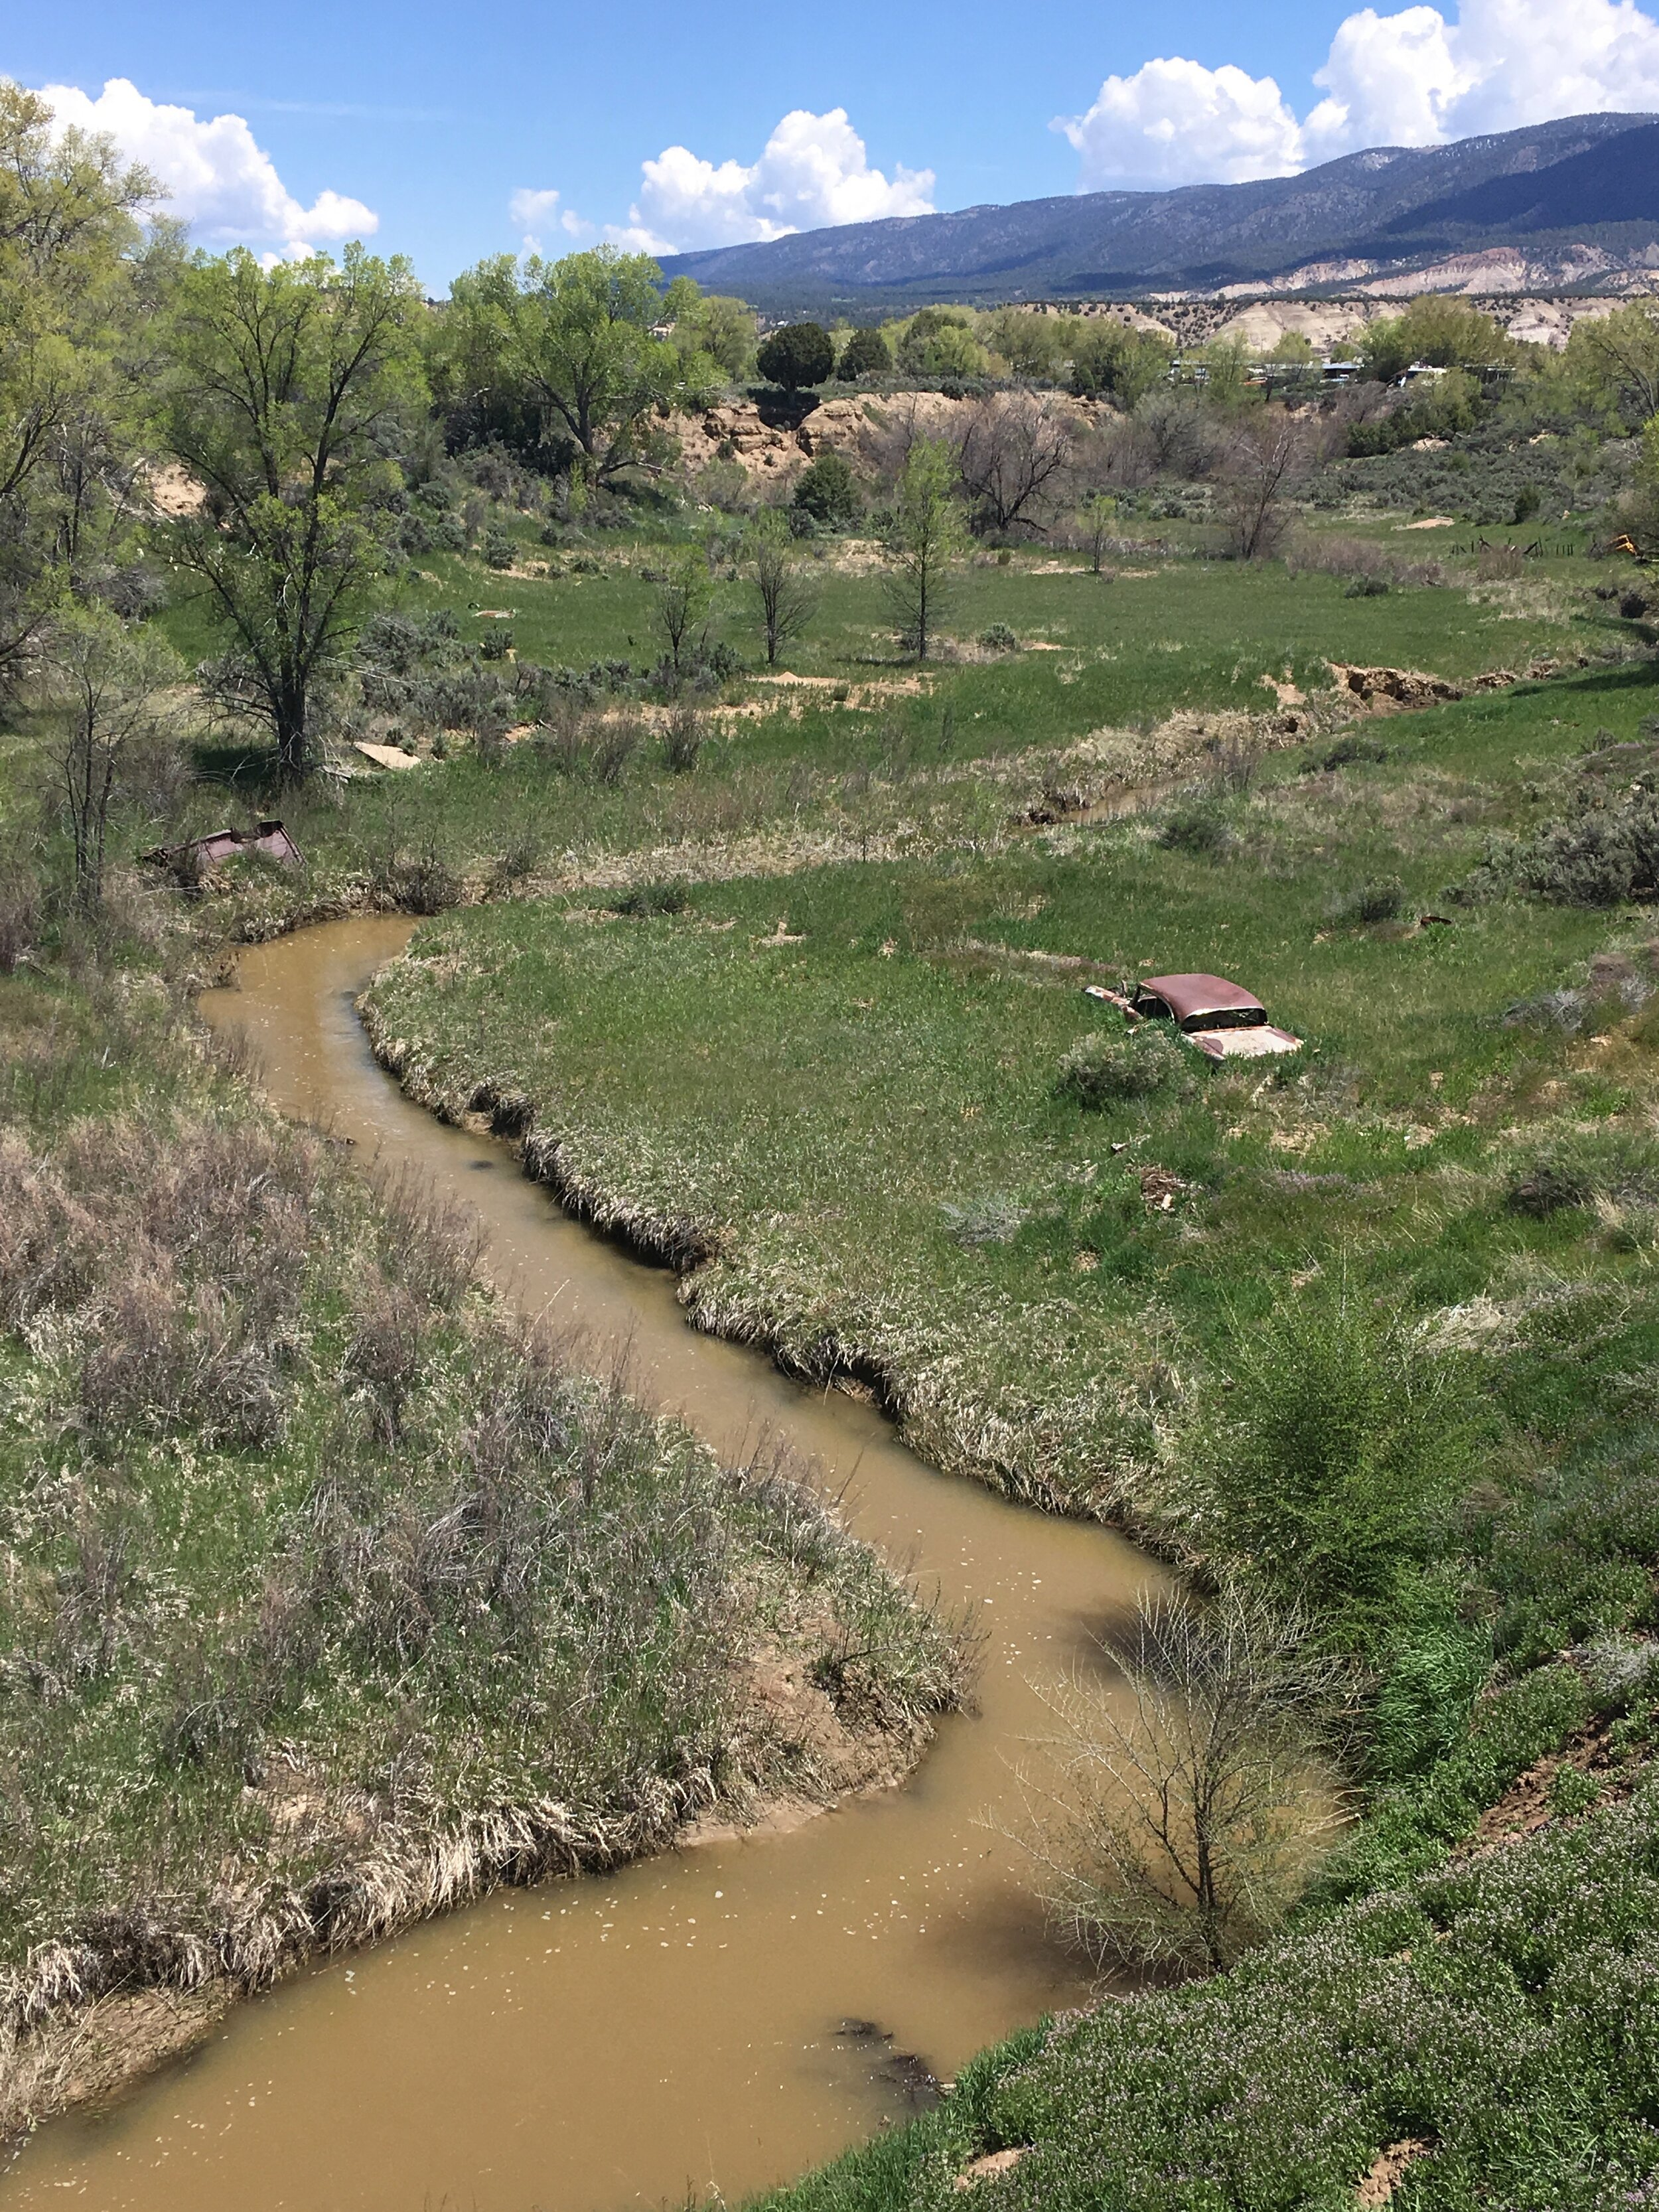 The Rio Puerco River in New Mexico, in 1979 the site of the largest accidental release of radiation in United States history (roughly 3 times as much radiation was released in this accident at a uranium tailings pond as was released in the notorious Three Mile Island Nuclear power plant disaster that same year).  Learn more .